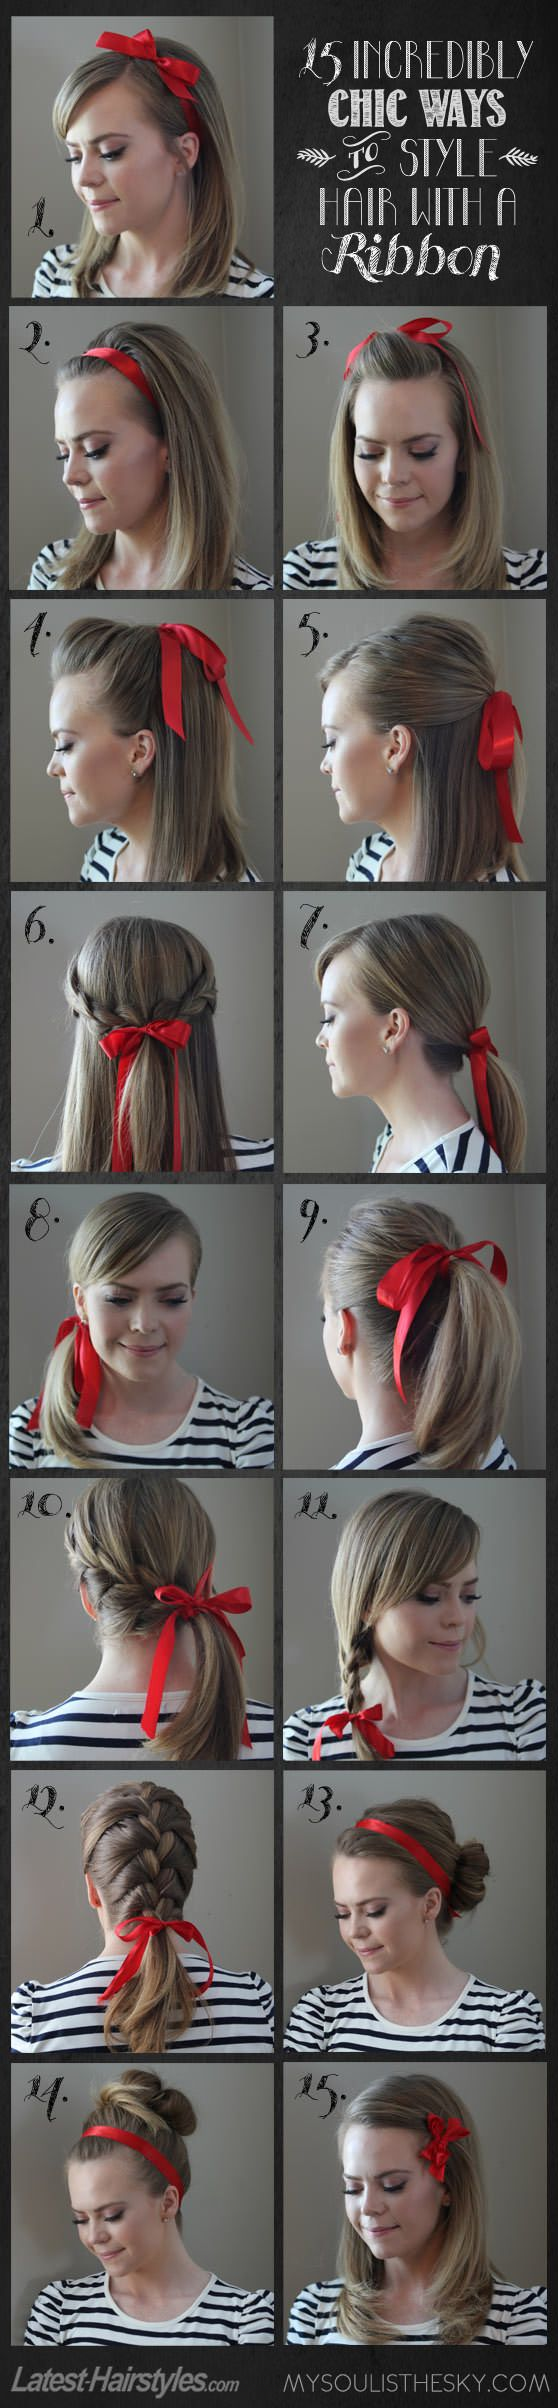 Incredibly chic ways to style your #hair with a ribbon...which to try first?? (click through to see tutorials for all 15 looks) @Rachael E E E Rostad